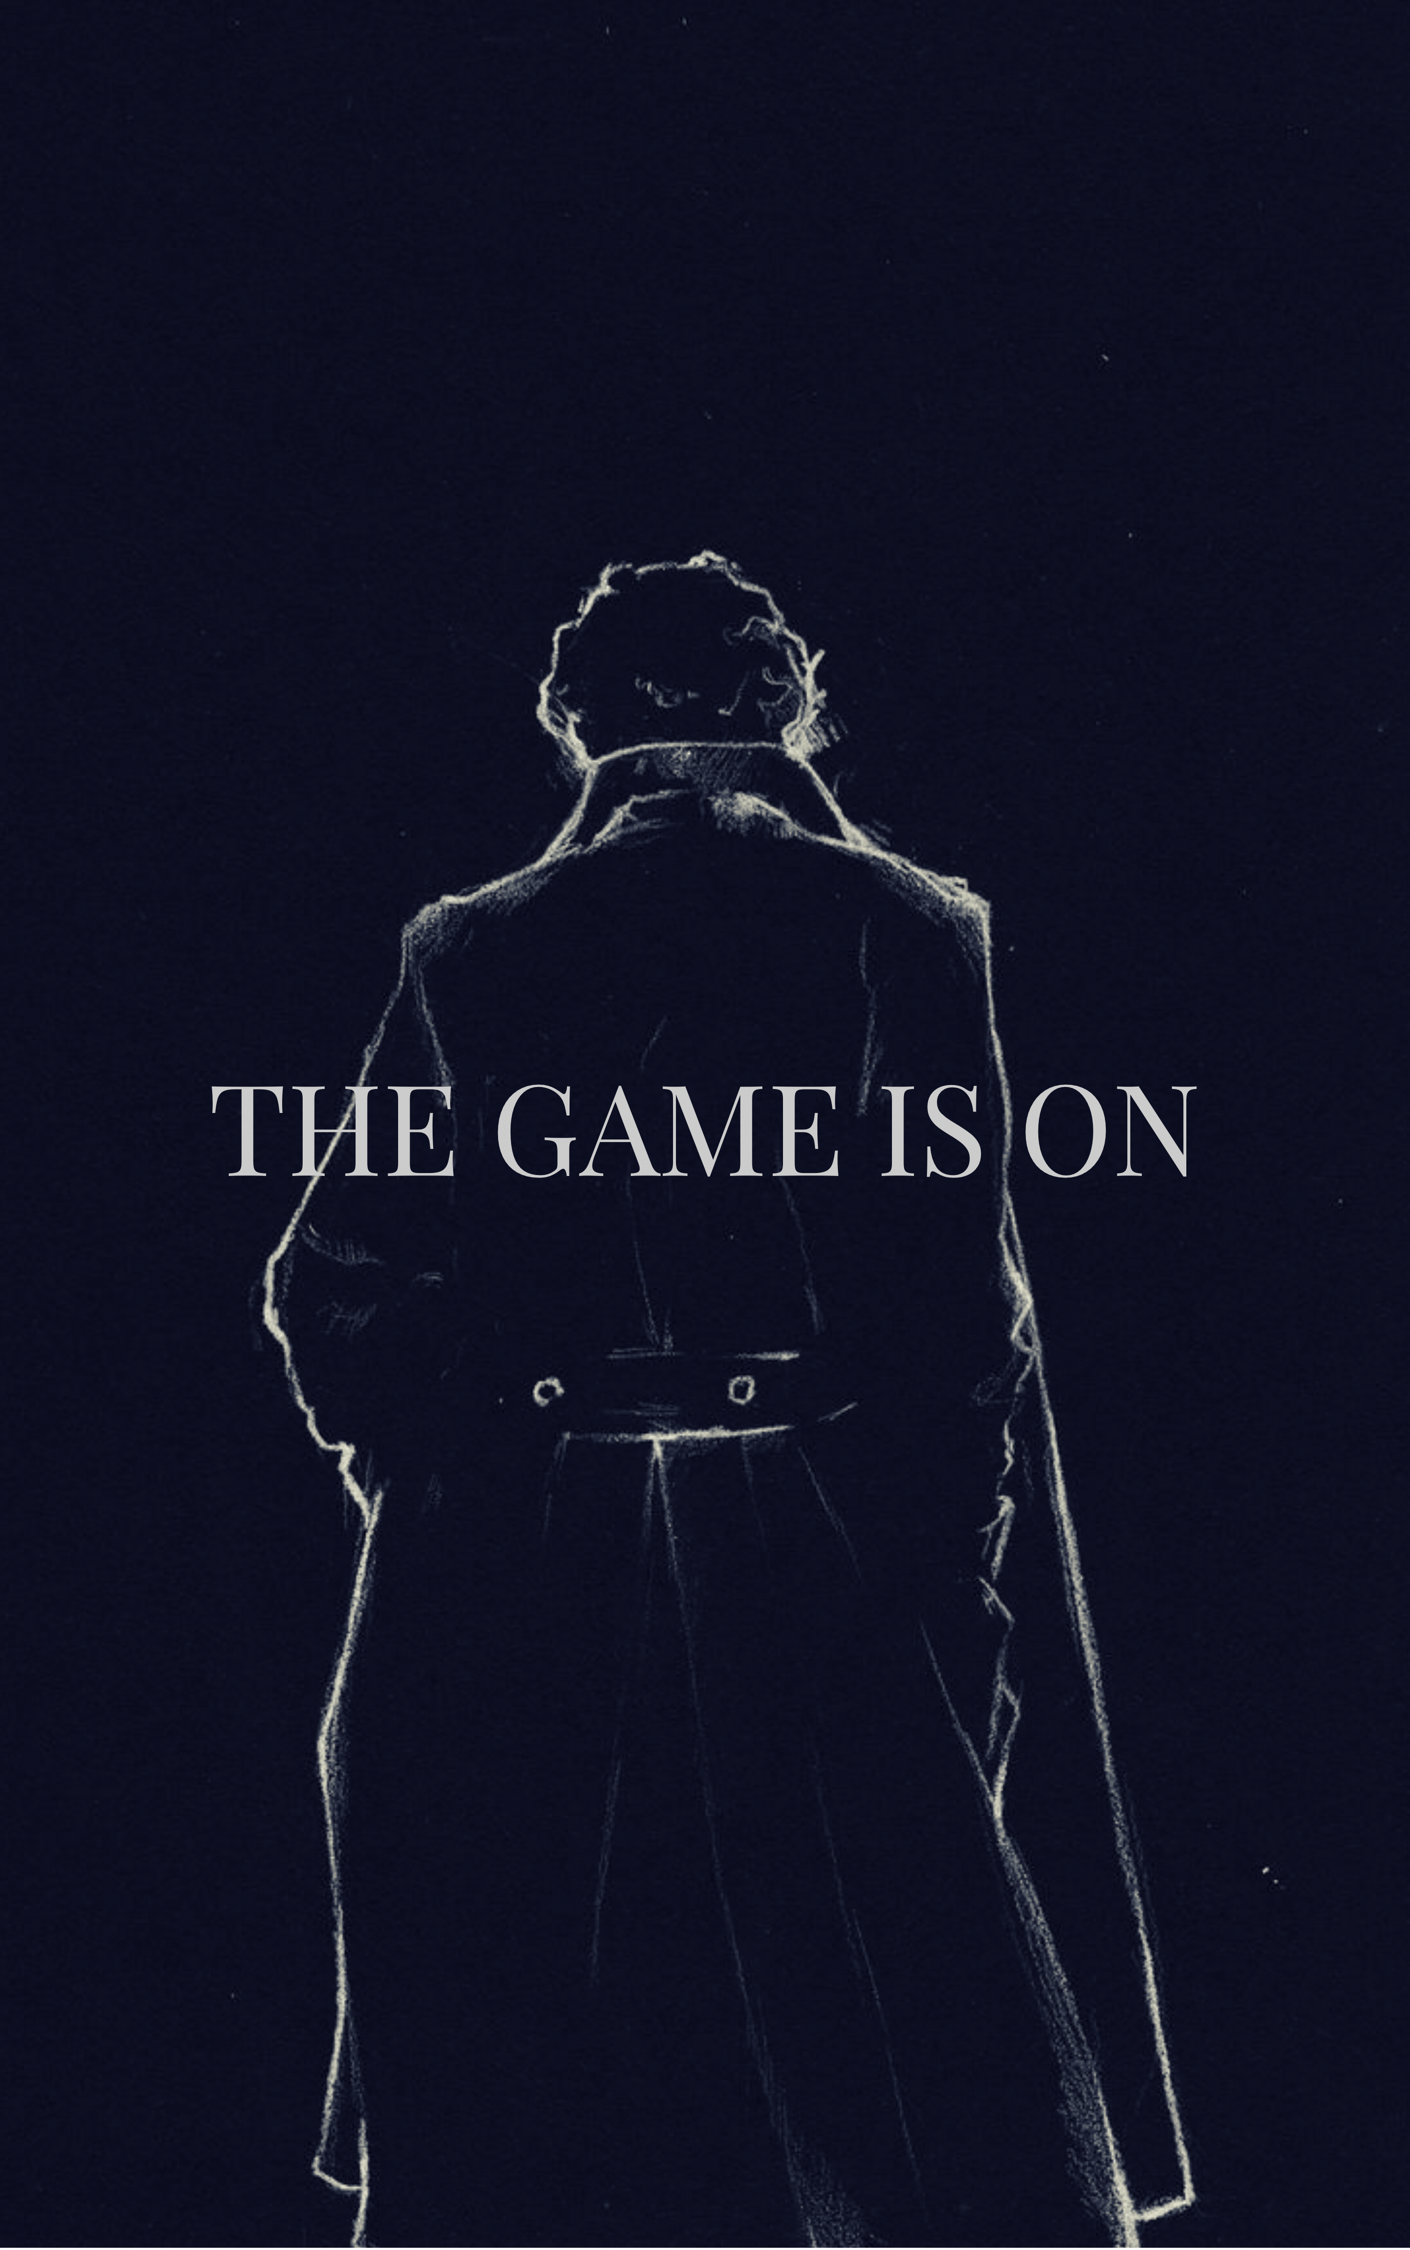 Enjoy This Edit That I Made Your Welcome Sherlock Holmes Quotes Sherlock Quotes Sherlock Art